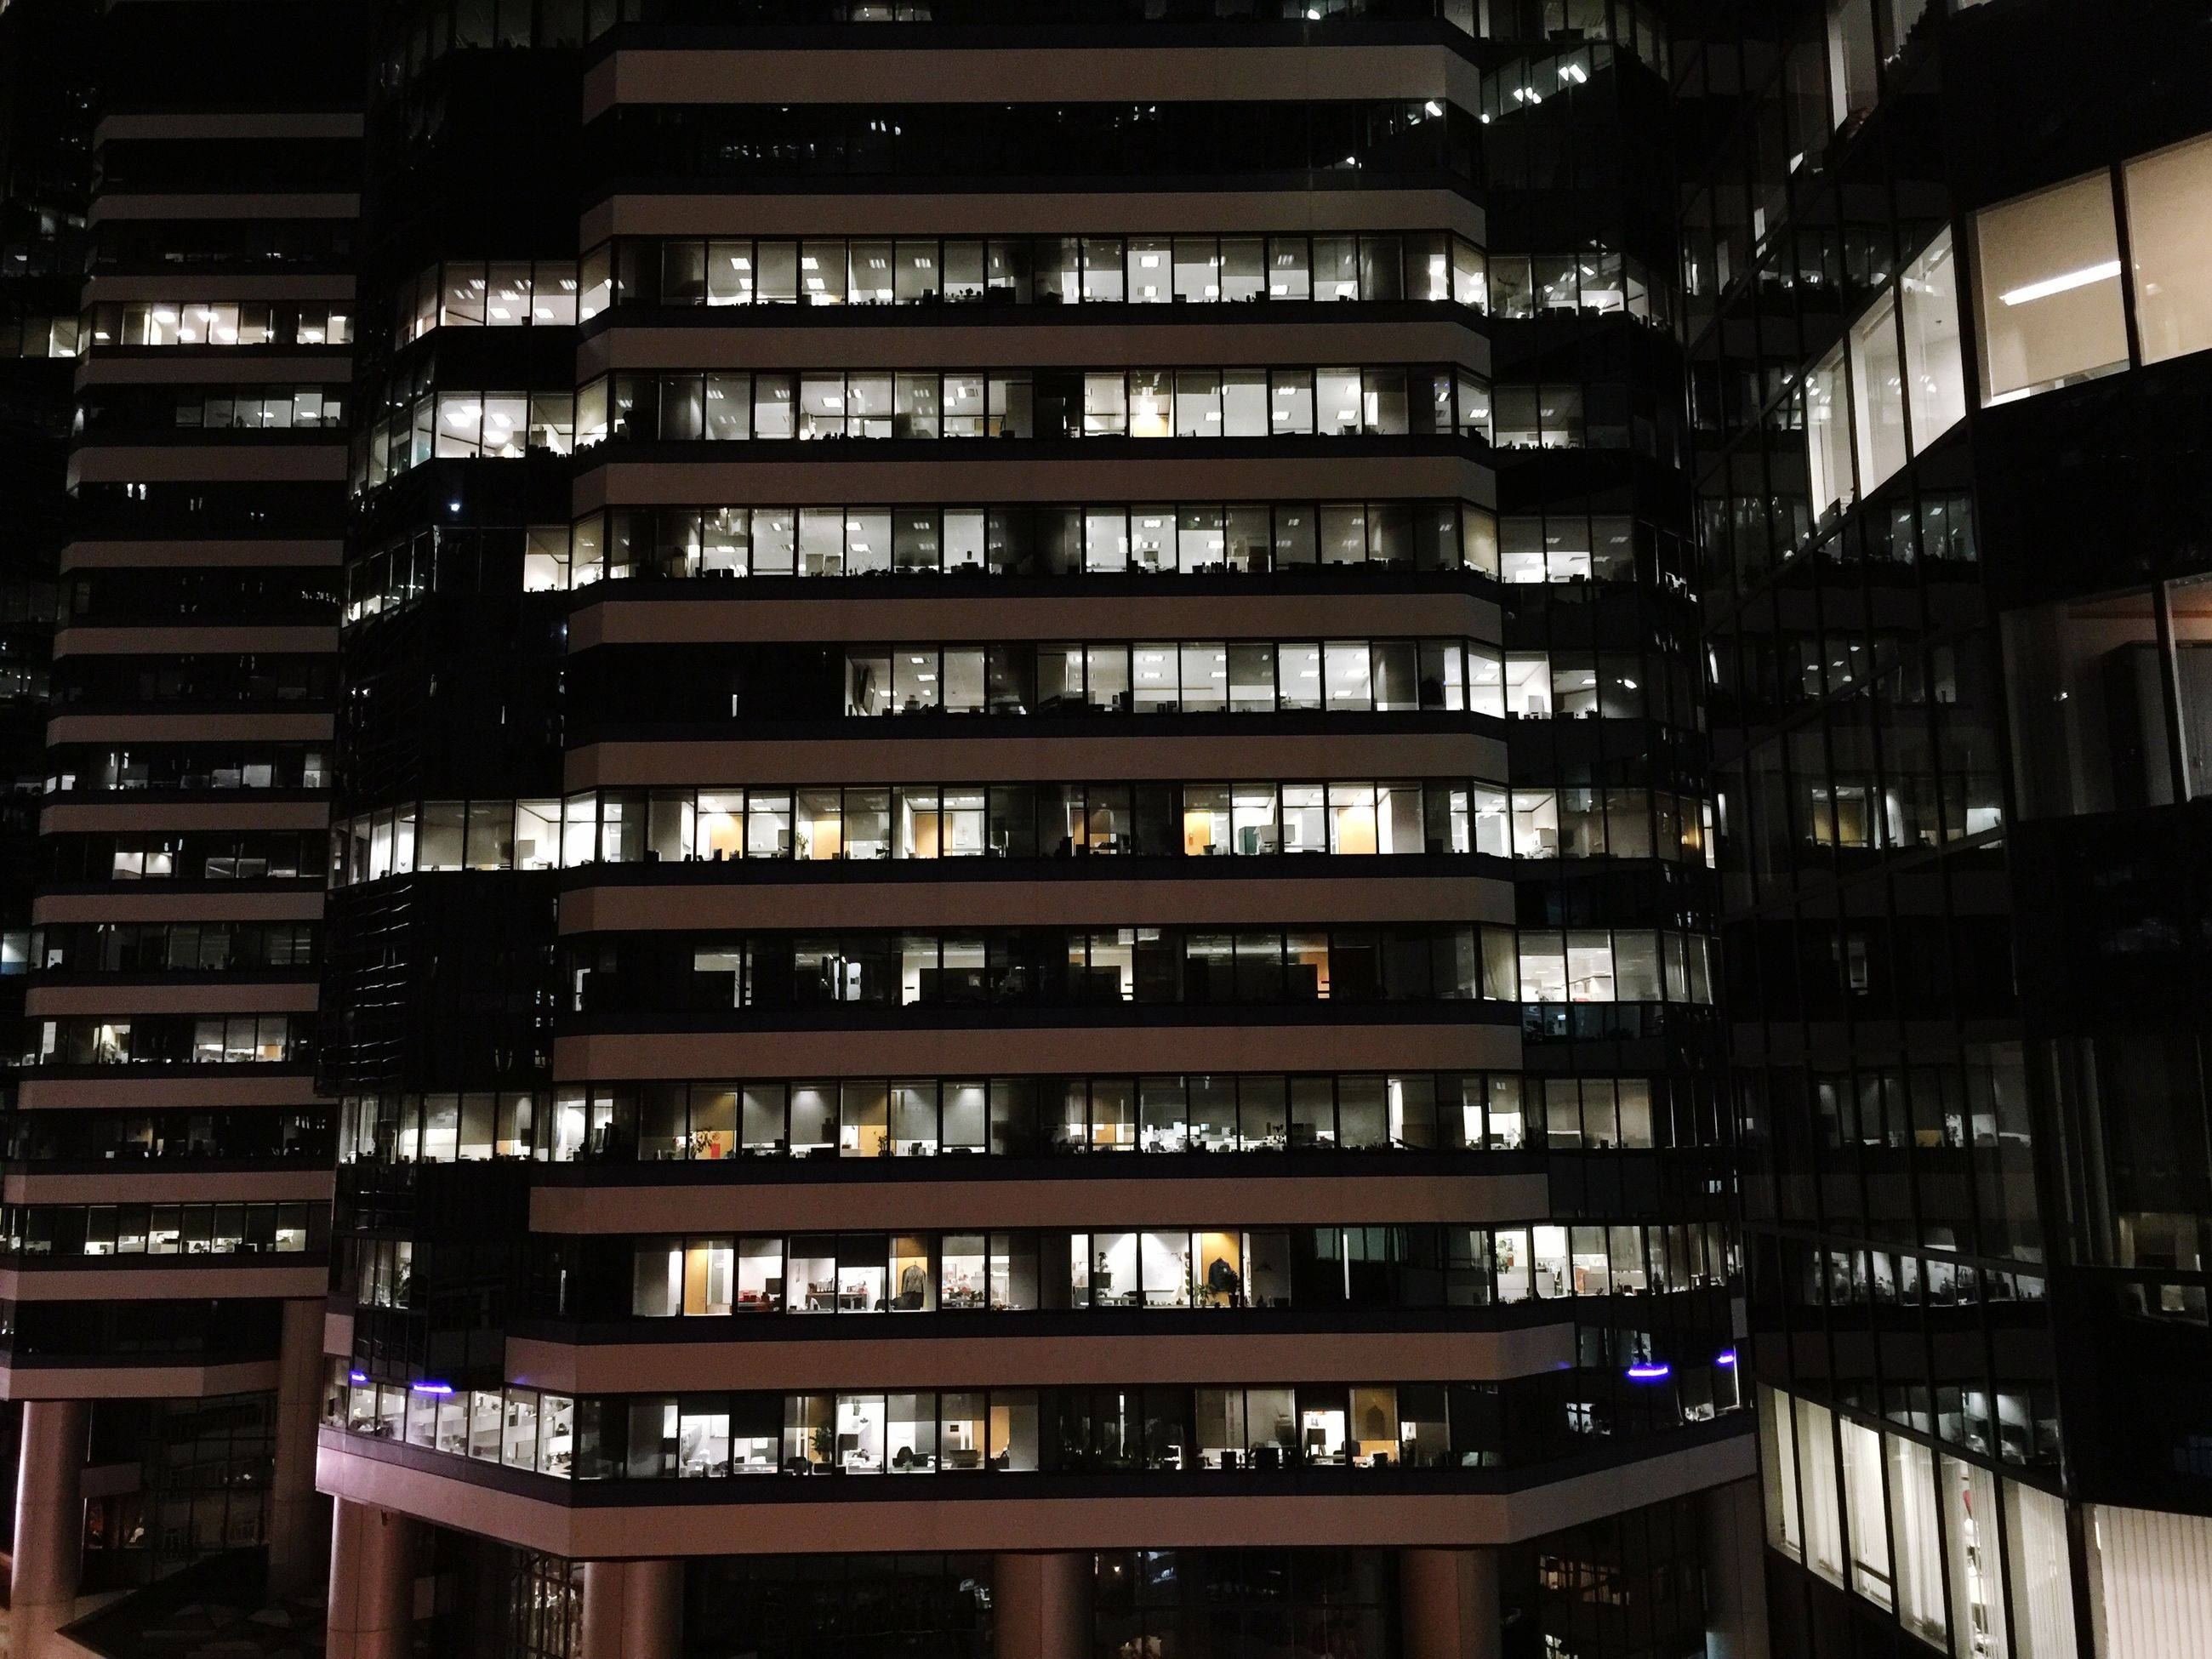 architecture, built structure, building exterior, illuminated, night, low angle view, modern, city, building, window, balcony, apartment, residential building, no people, indoors, repetition, residential structure, in a row, office building, glass - material